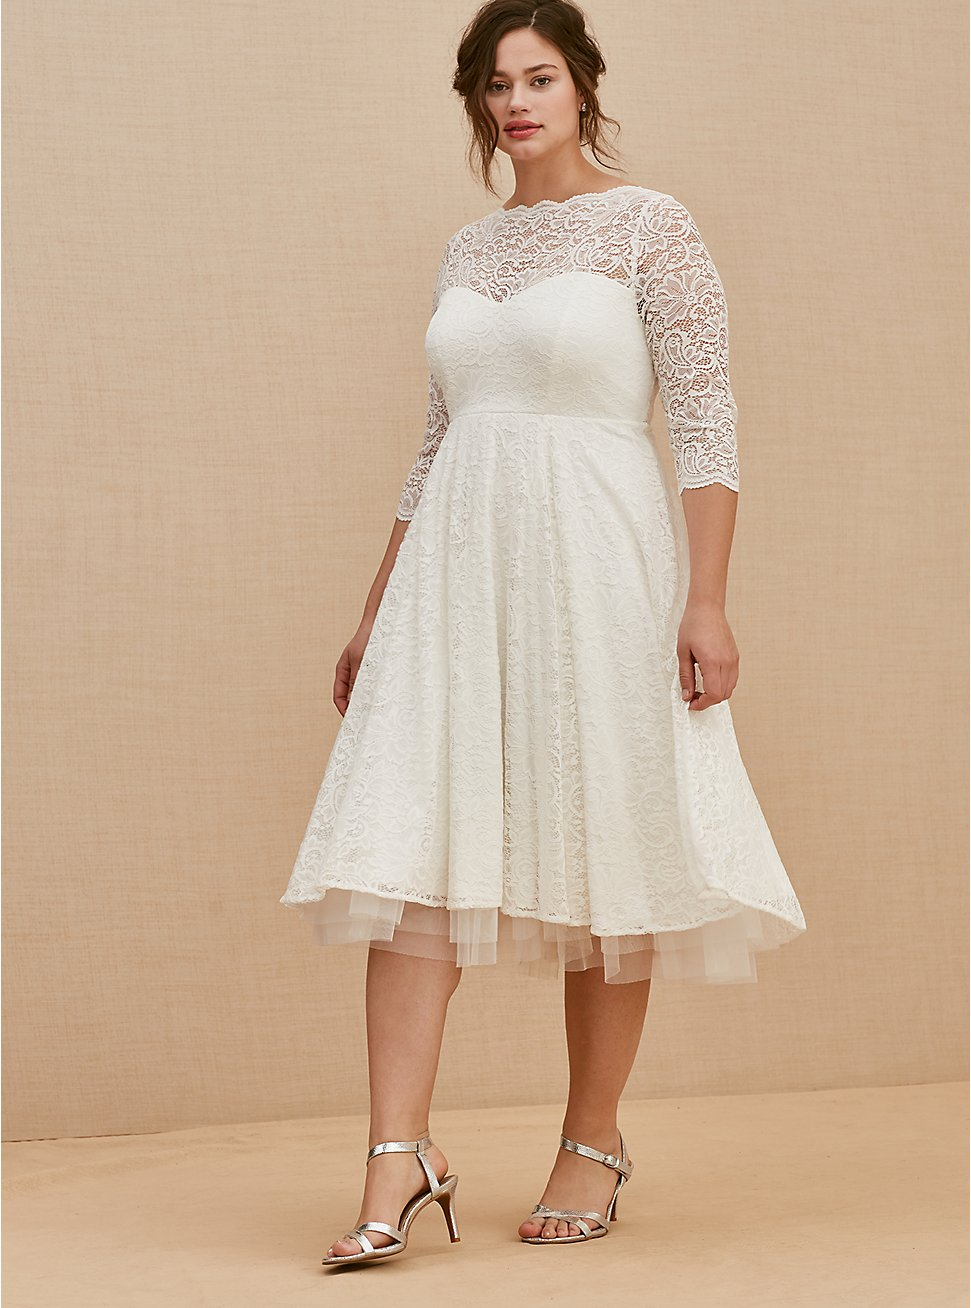 Plus Size Ivory Lace Tea-Length Wedding Dress, CLOUD DANCER, hi-res